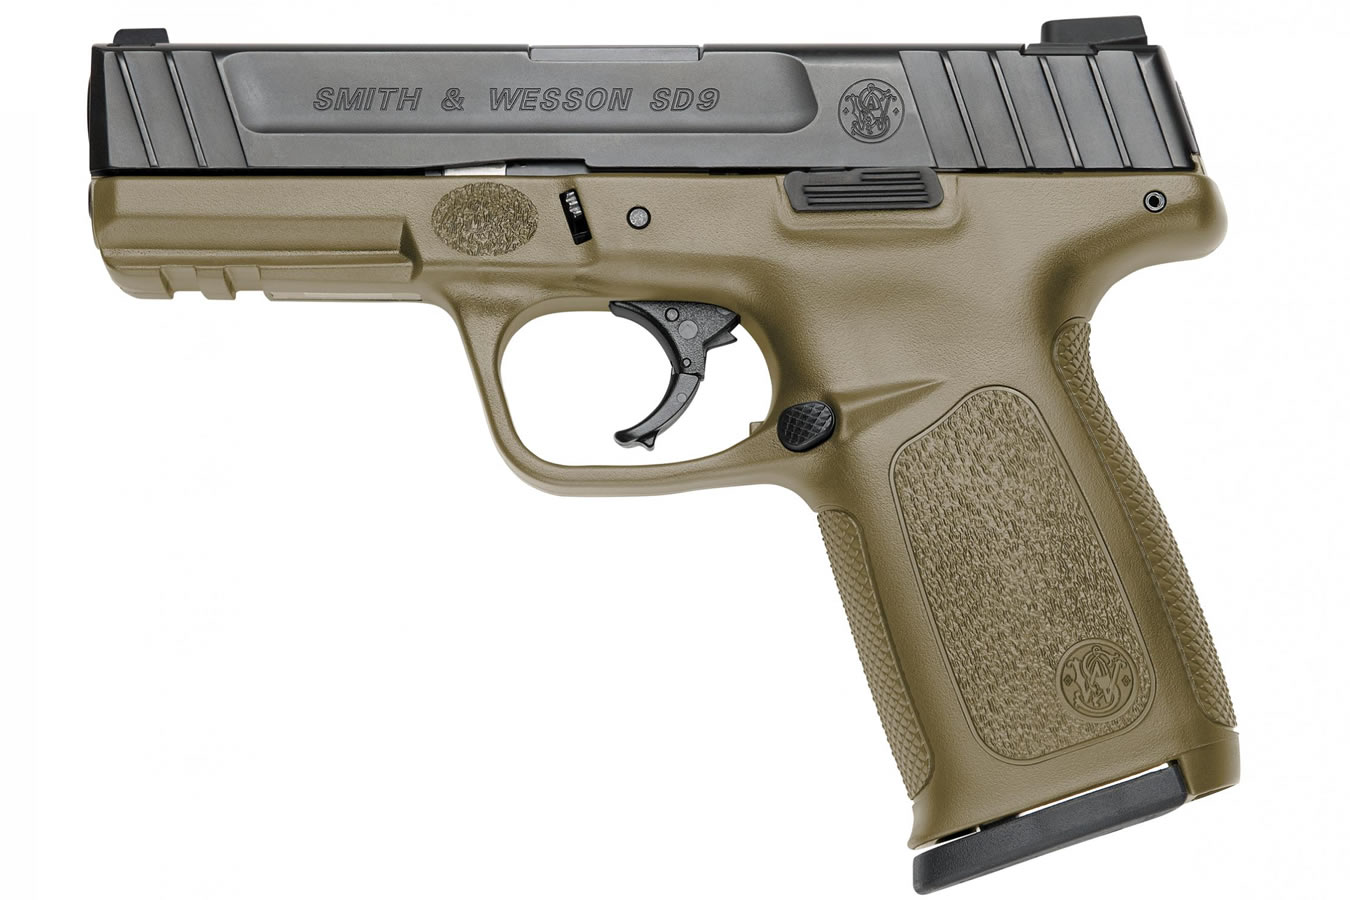 SD9 9MM WITH FDE FRAME